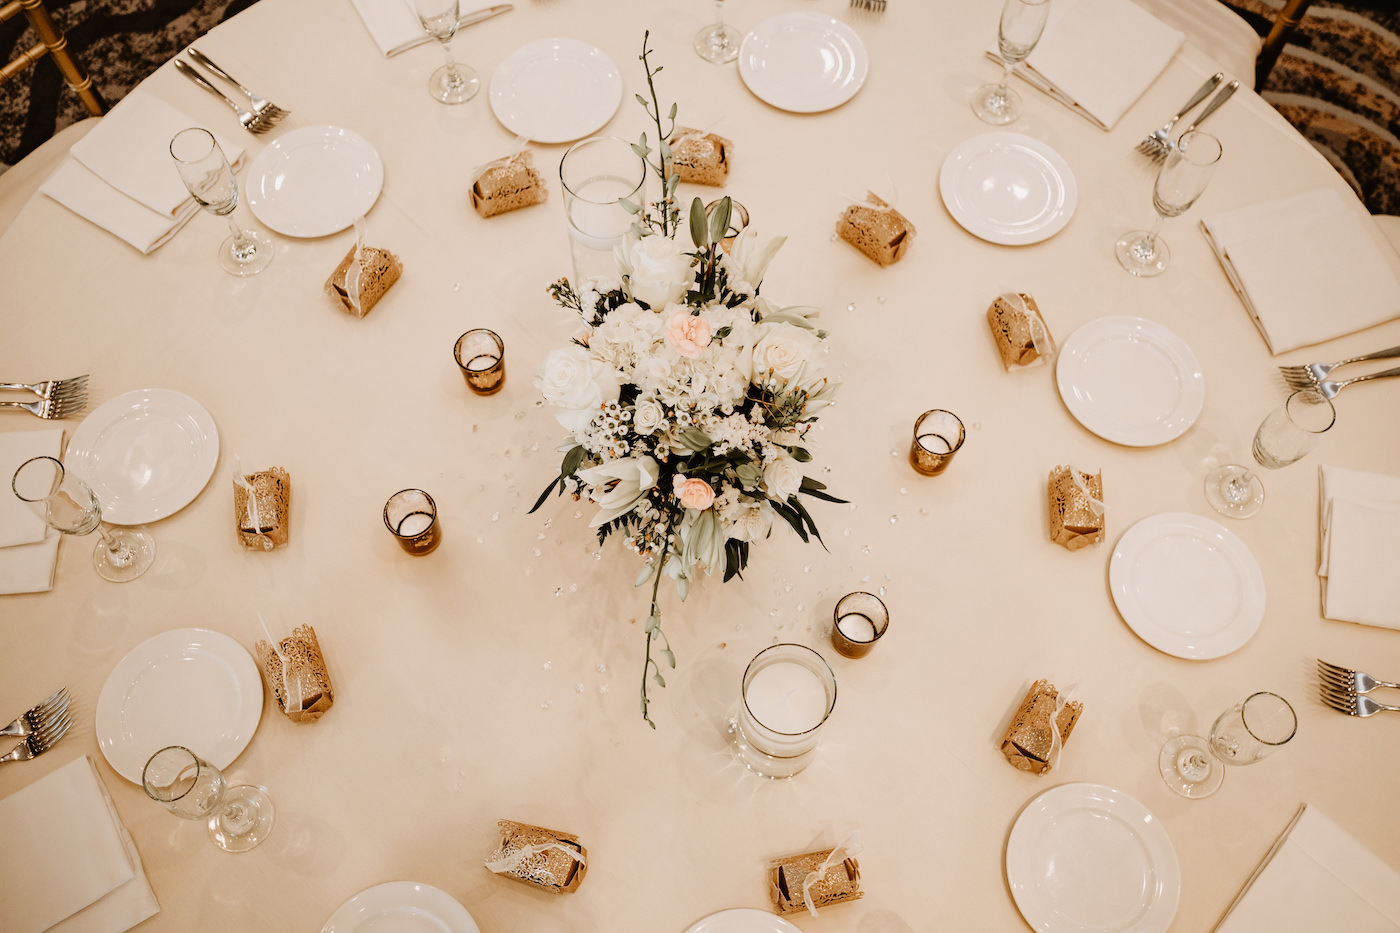 Monochromatic Neutral Wedding Reception Table with White Linens and Gold Votive Candles and White Floral Centerpiece of Ivory Roses Hydrangea Lillies and Orchids